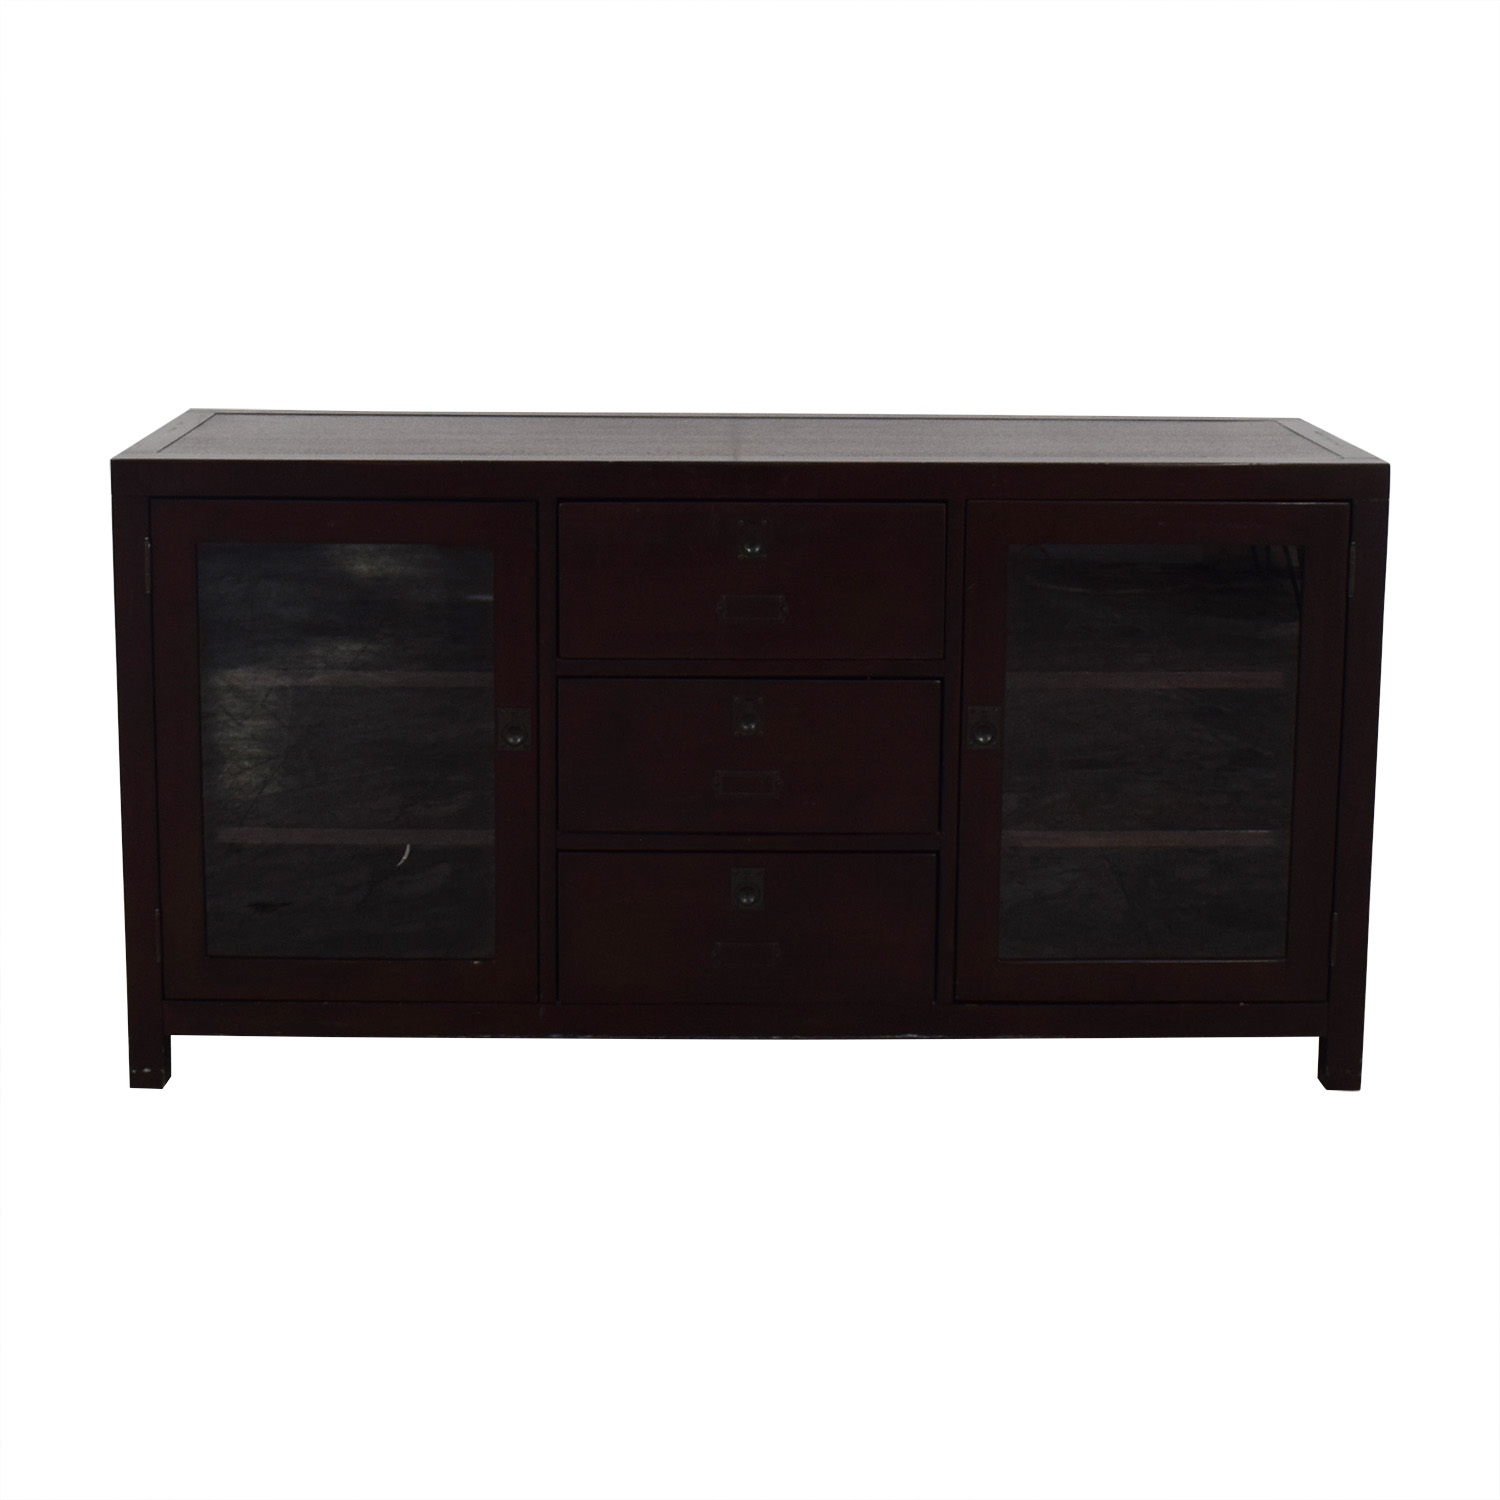 Crate & Barrel Crate & Barrel Media Console on sale